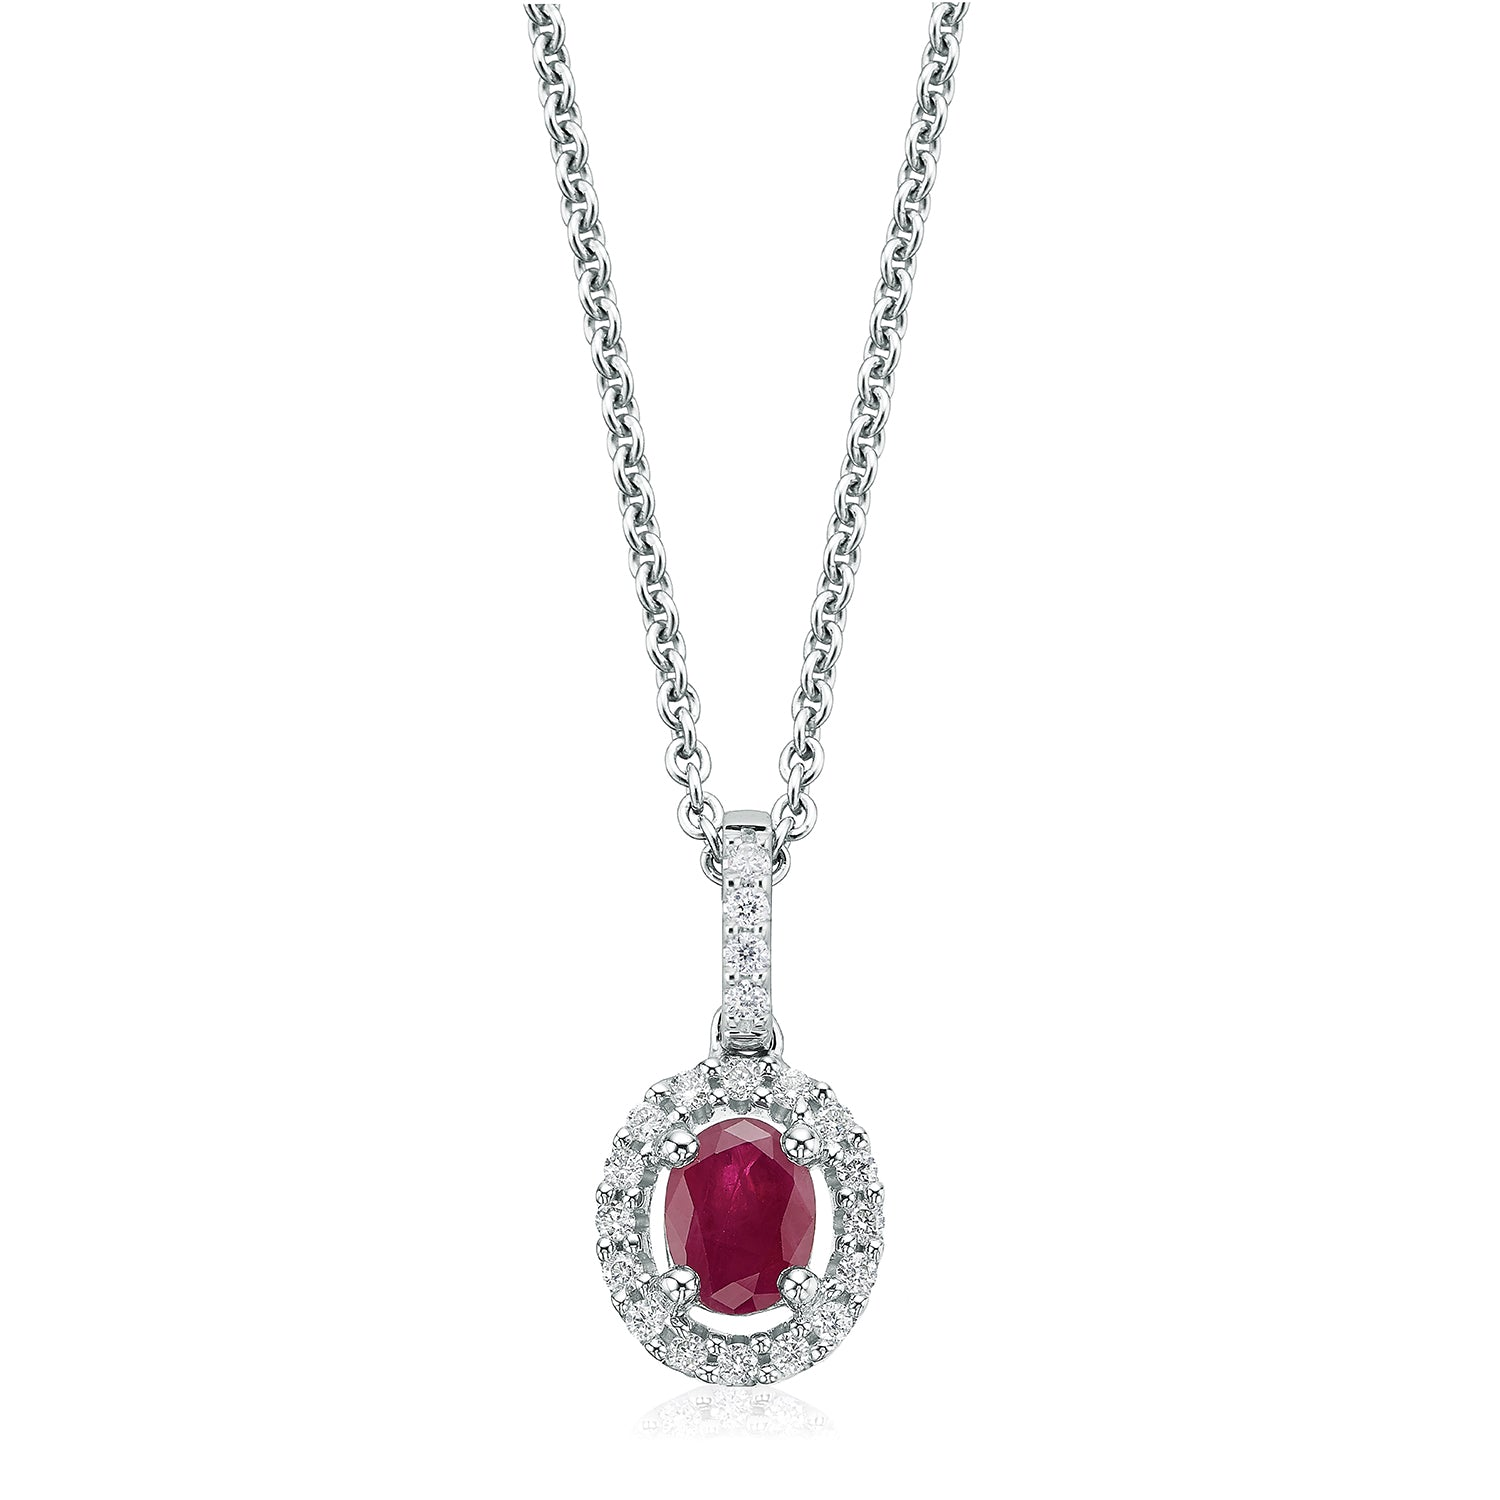 18ct White Gold Oval Cut Ruby with 0.10 CARAT tw of Diamond Pendant